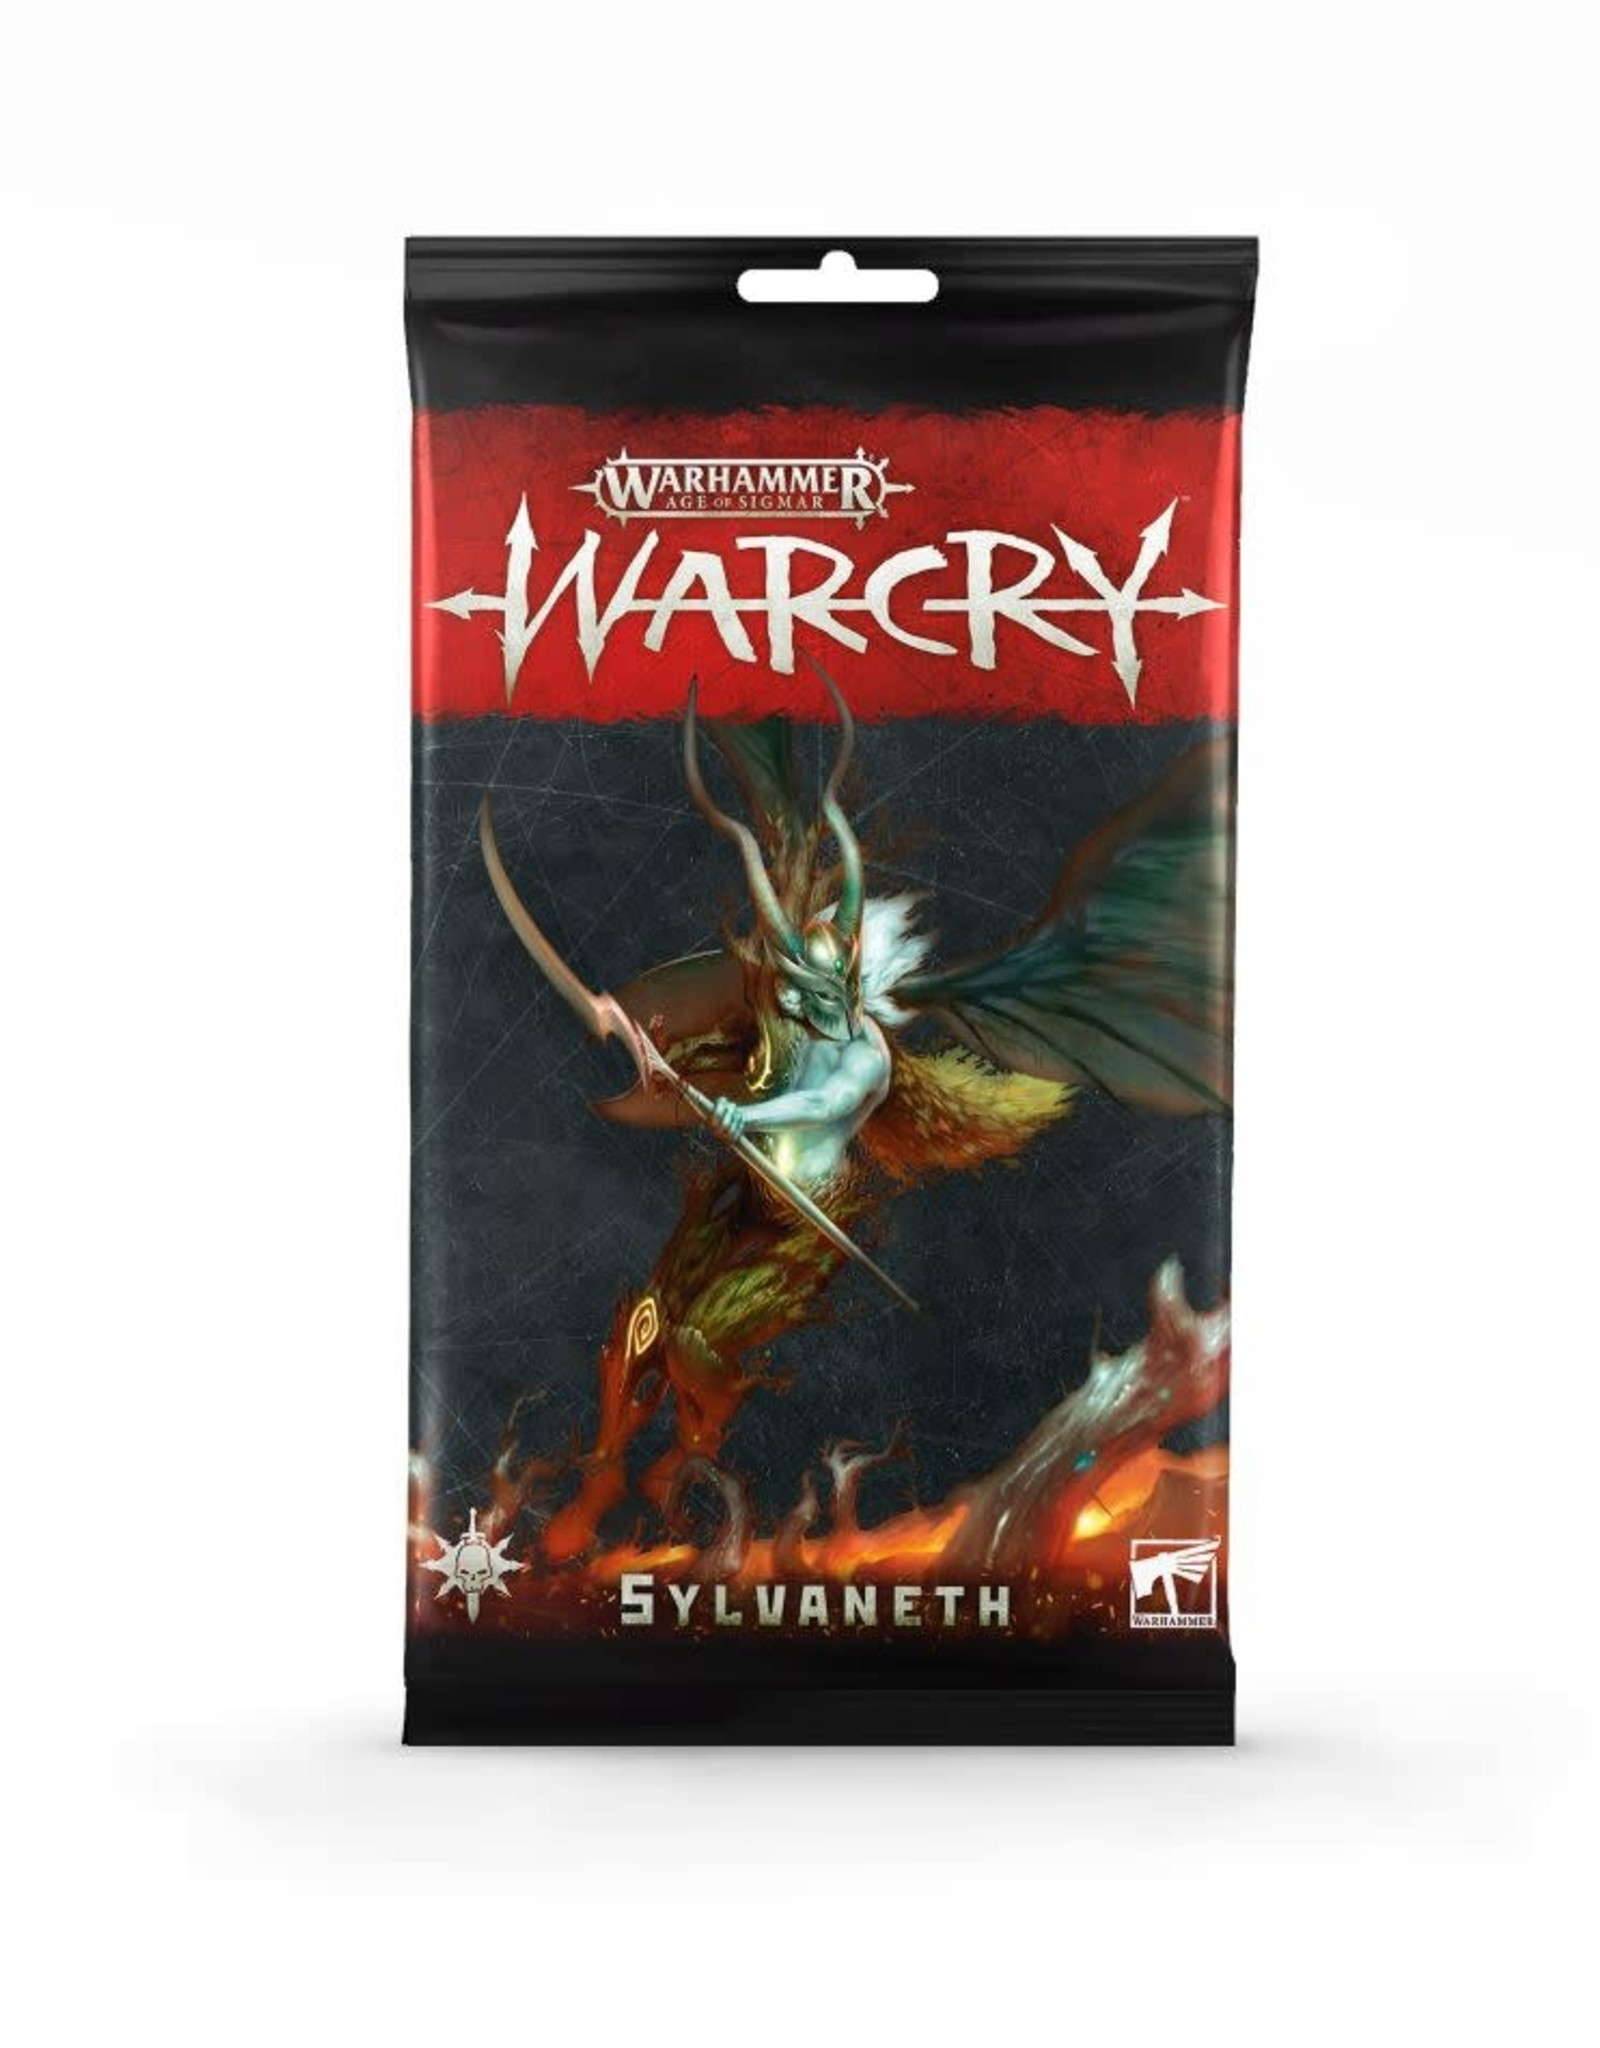 WarCry Warcry: Sylvaneth Card Pack